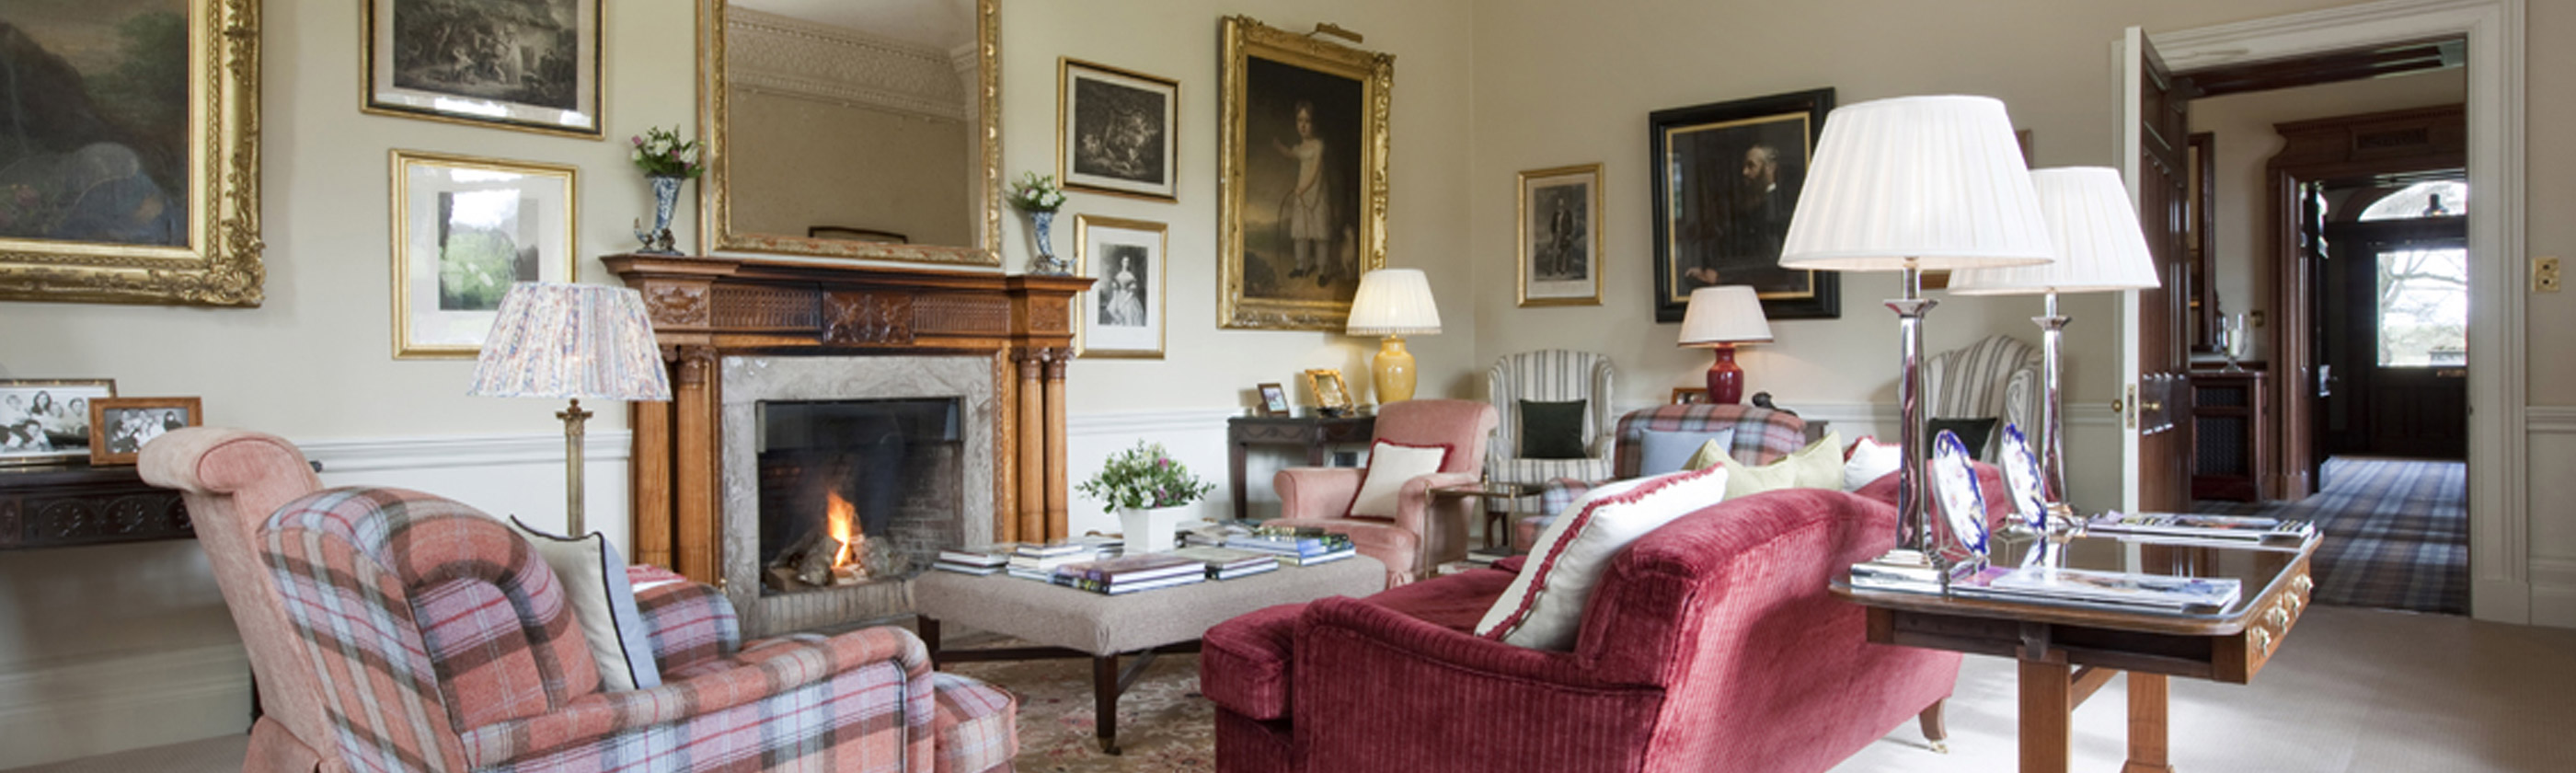 Photo of the drawing room with open fire in the Roxburghe Hotel